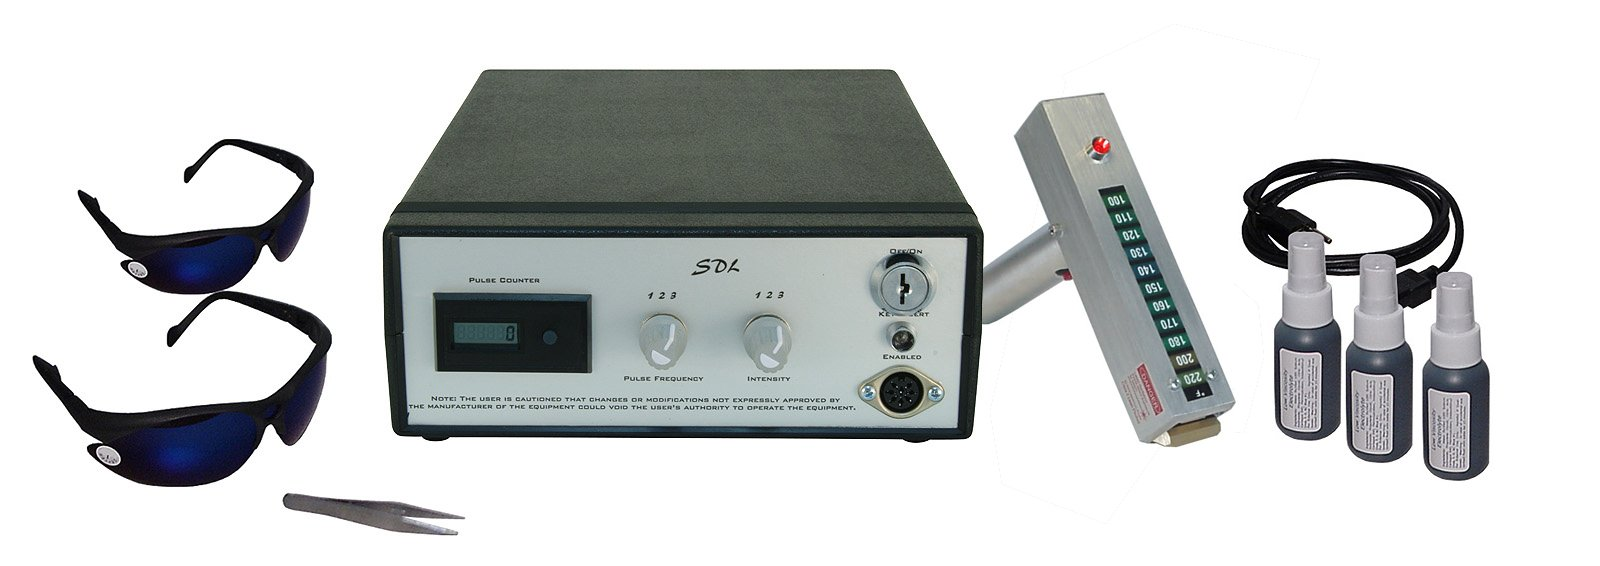 SDL-80aDX Laser Hair Removal Machine for bikini line, face and body, treatment of vascular lesions and spider veins.